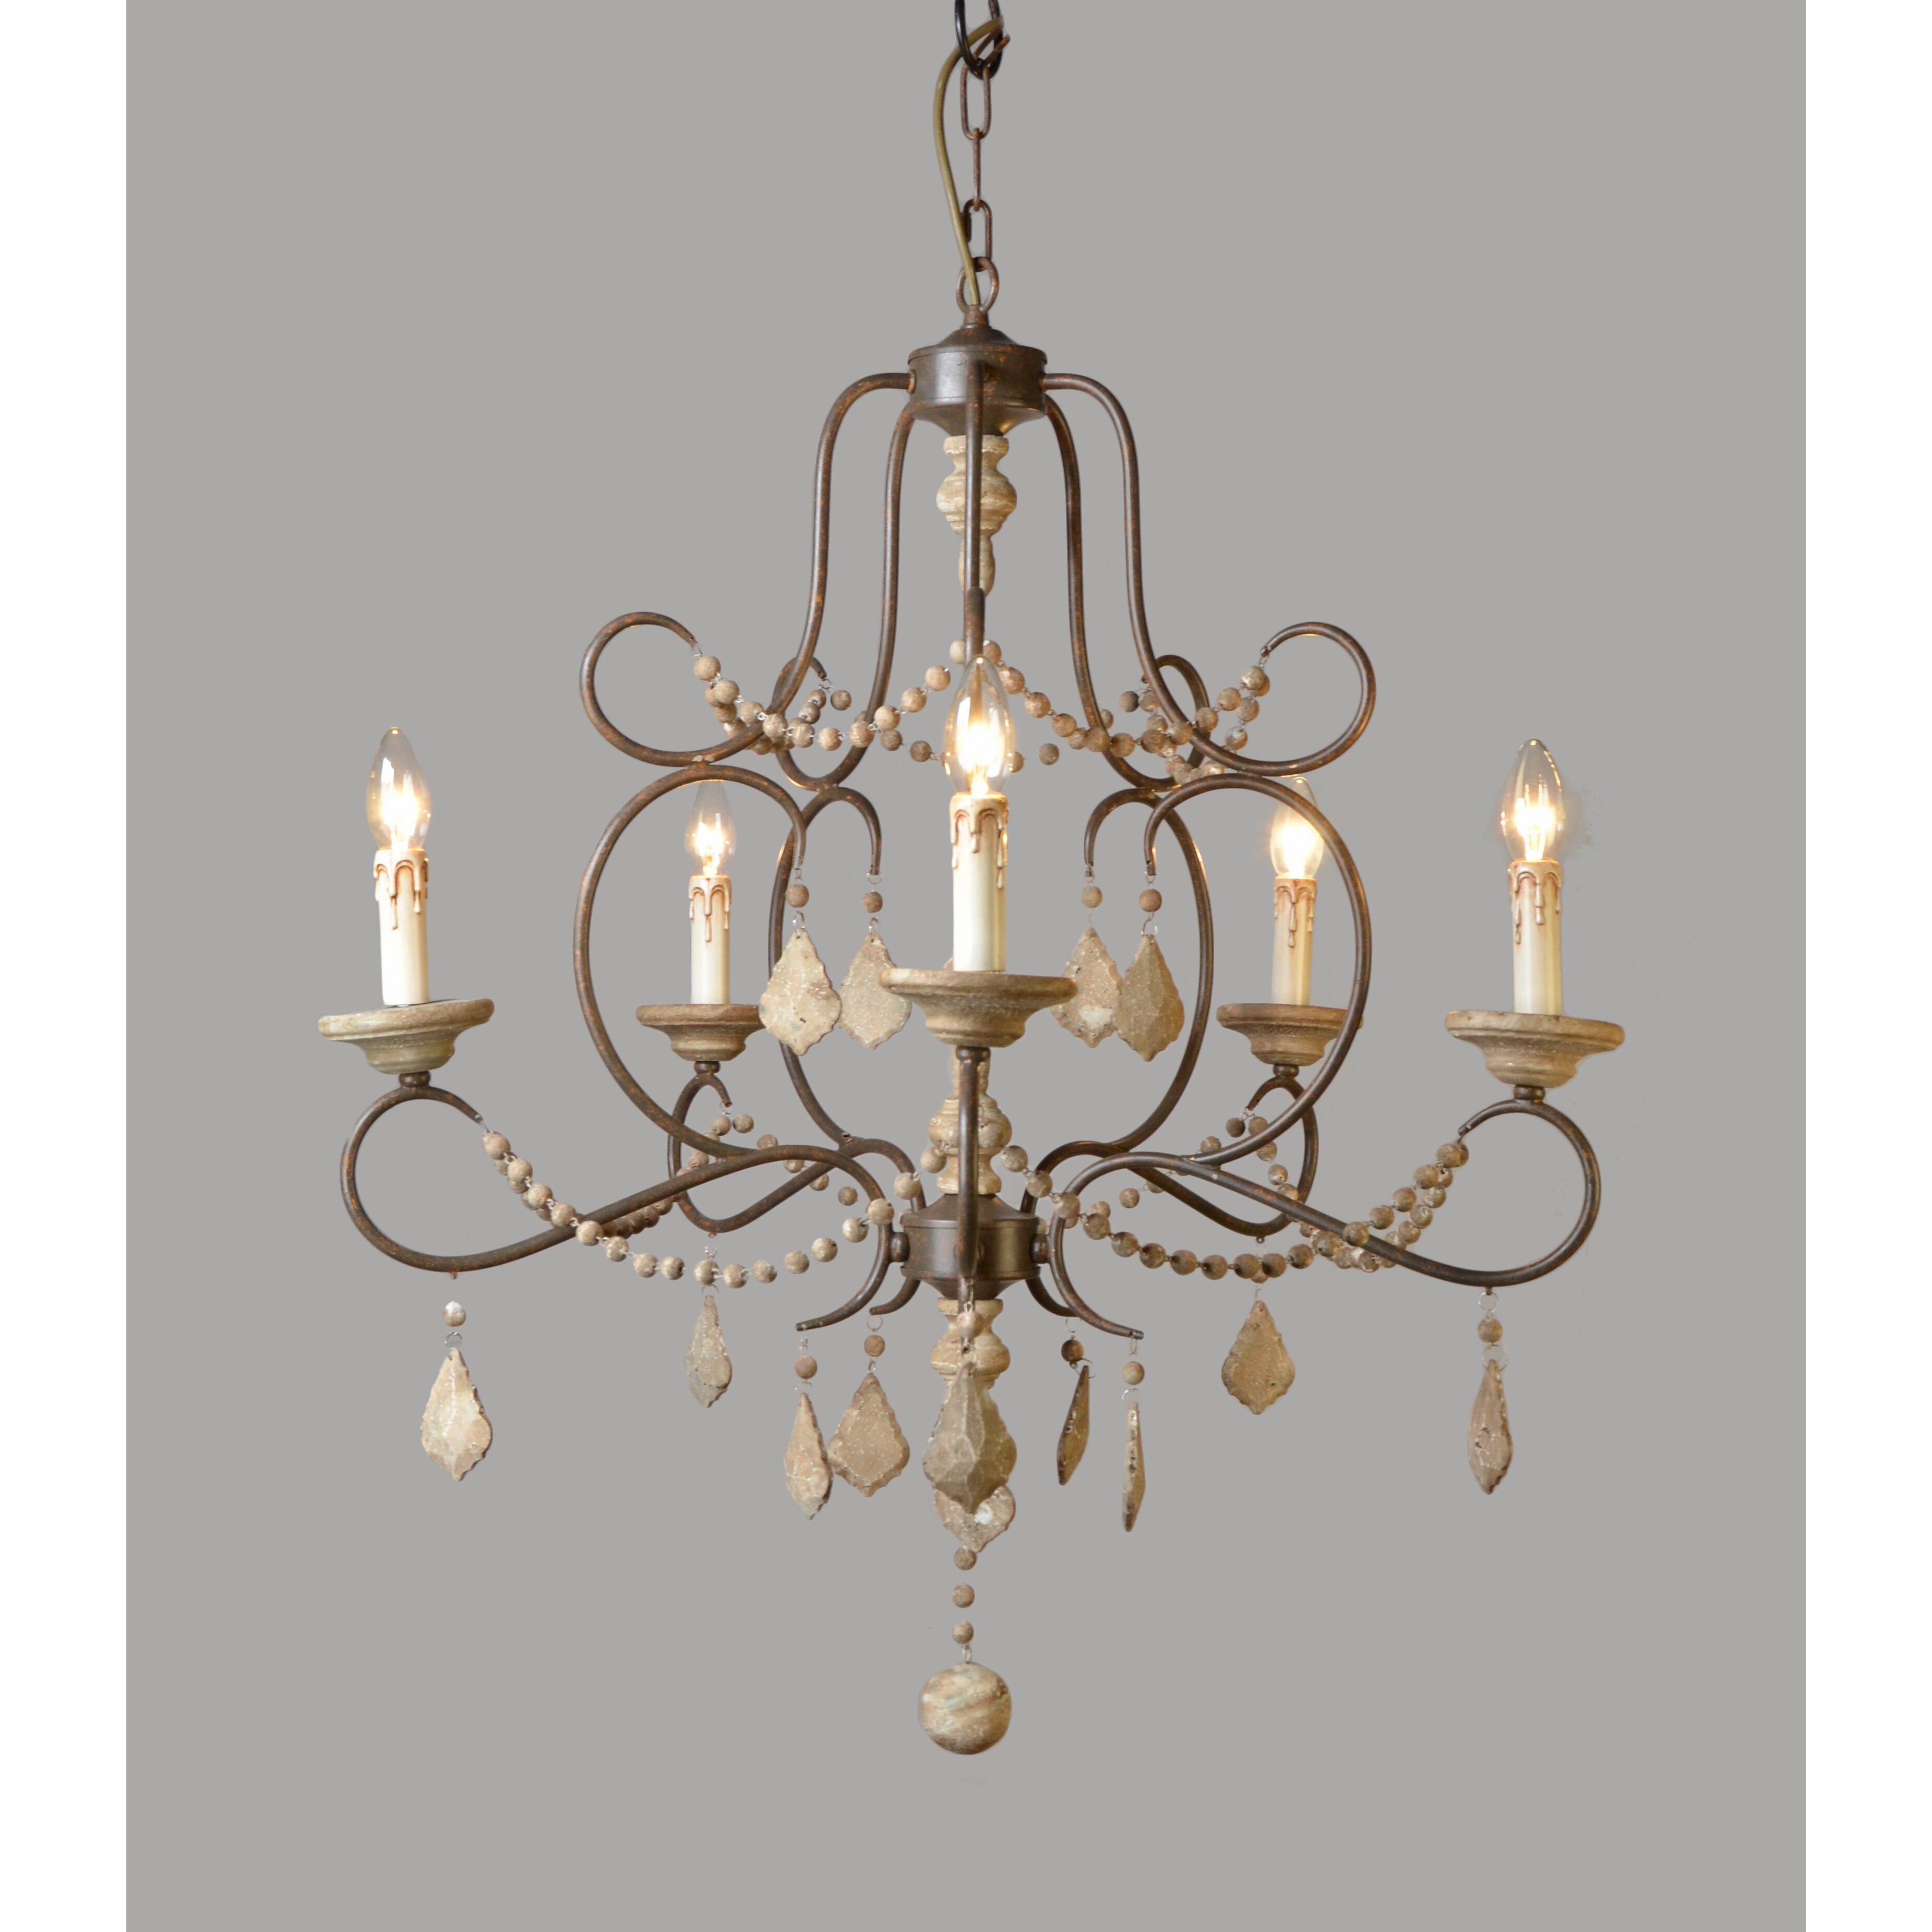 MOTI Furniture 5 Light Candle-Style Chandelier